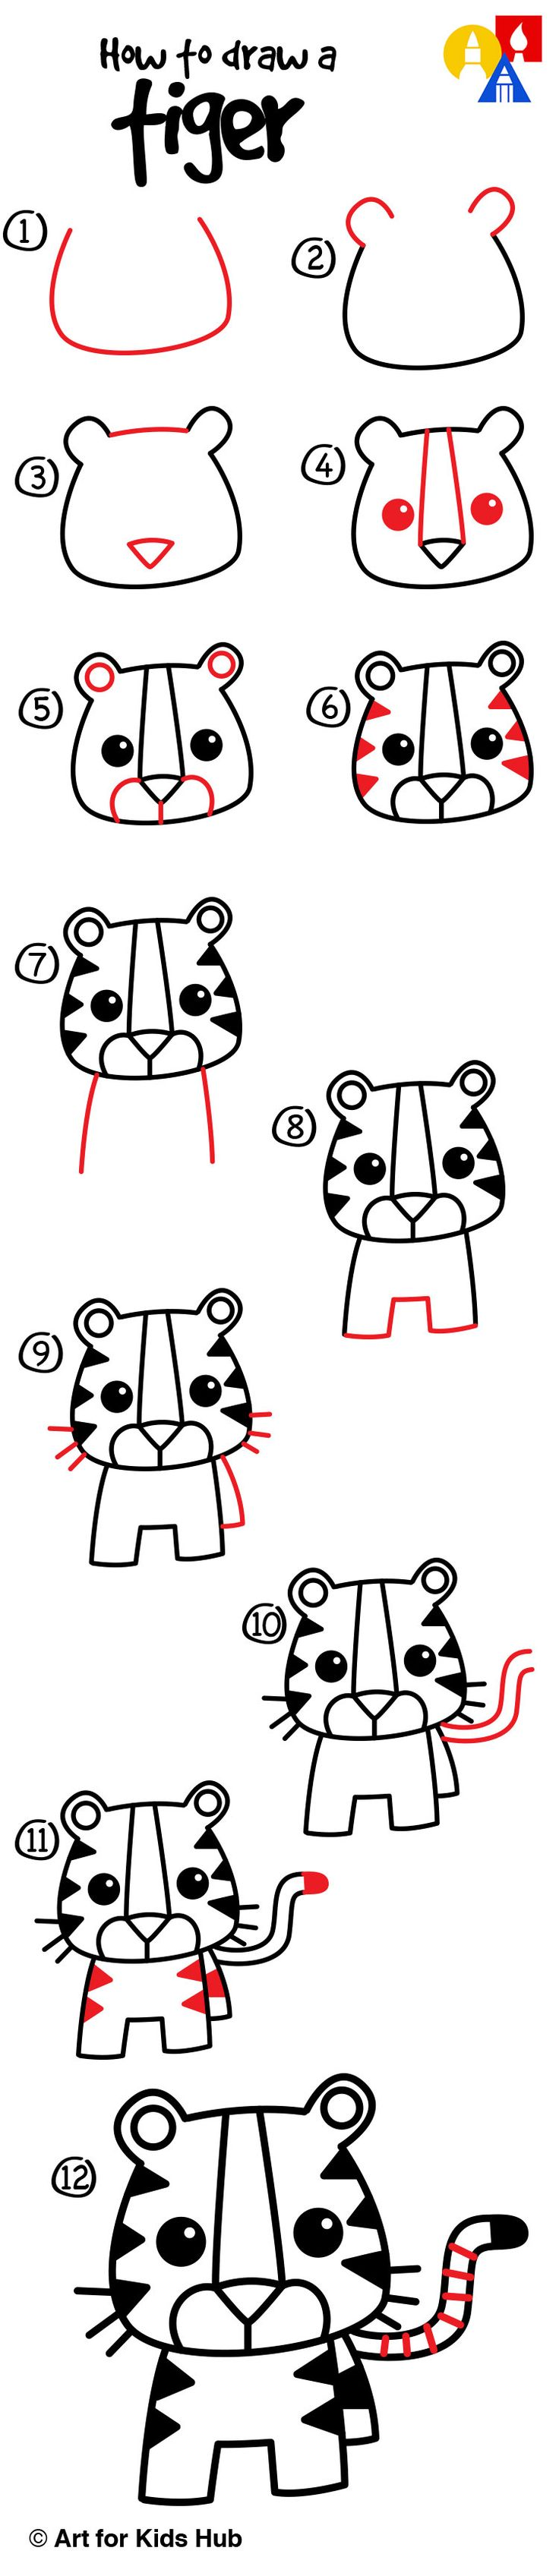 62 best afkh step by steps images on pinterest easy drawings how to draw a cartoon tiger art for kids hub altavistaventures Image collections